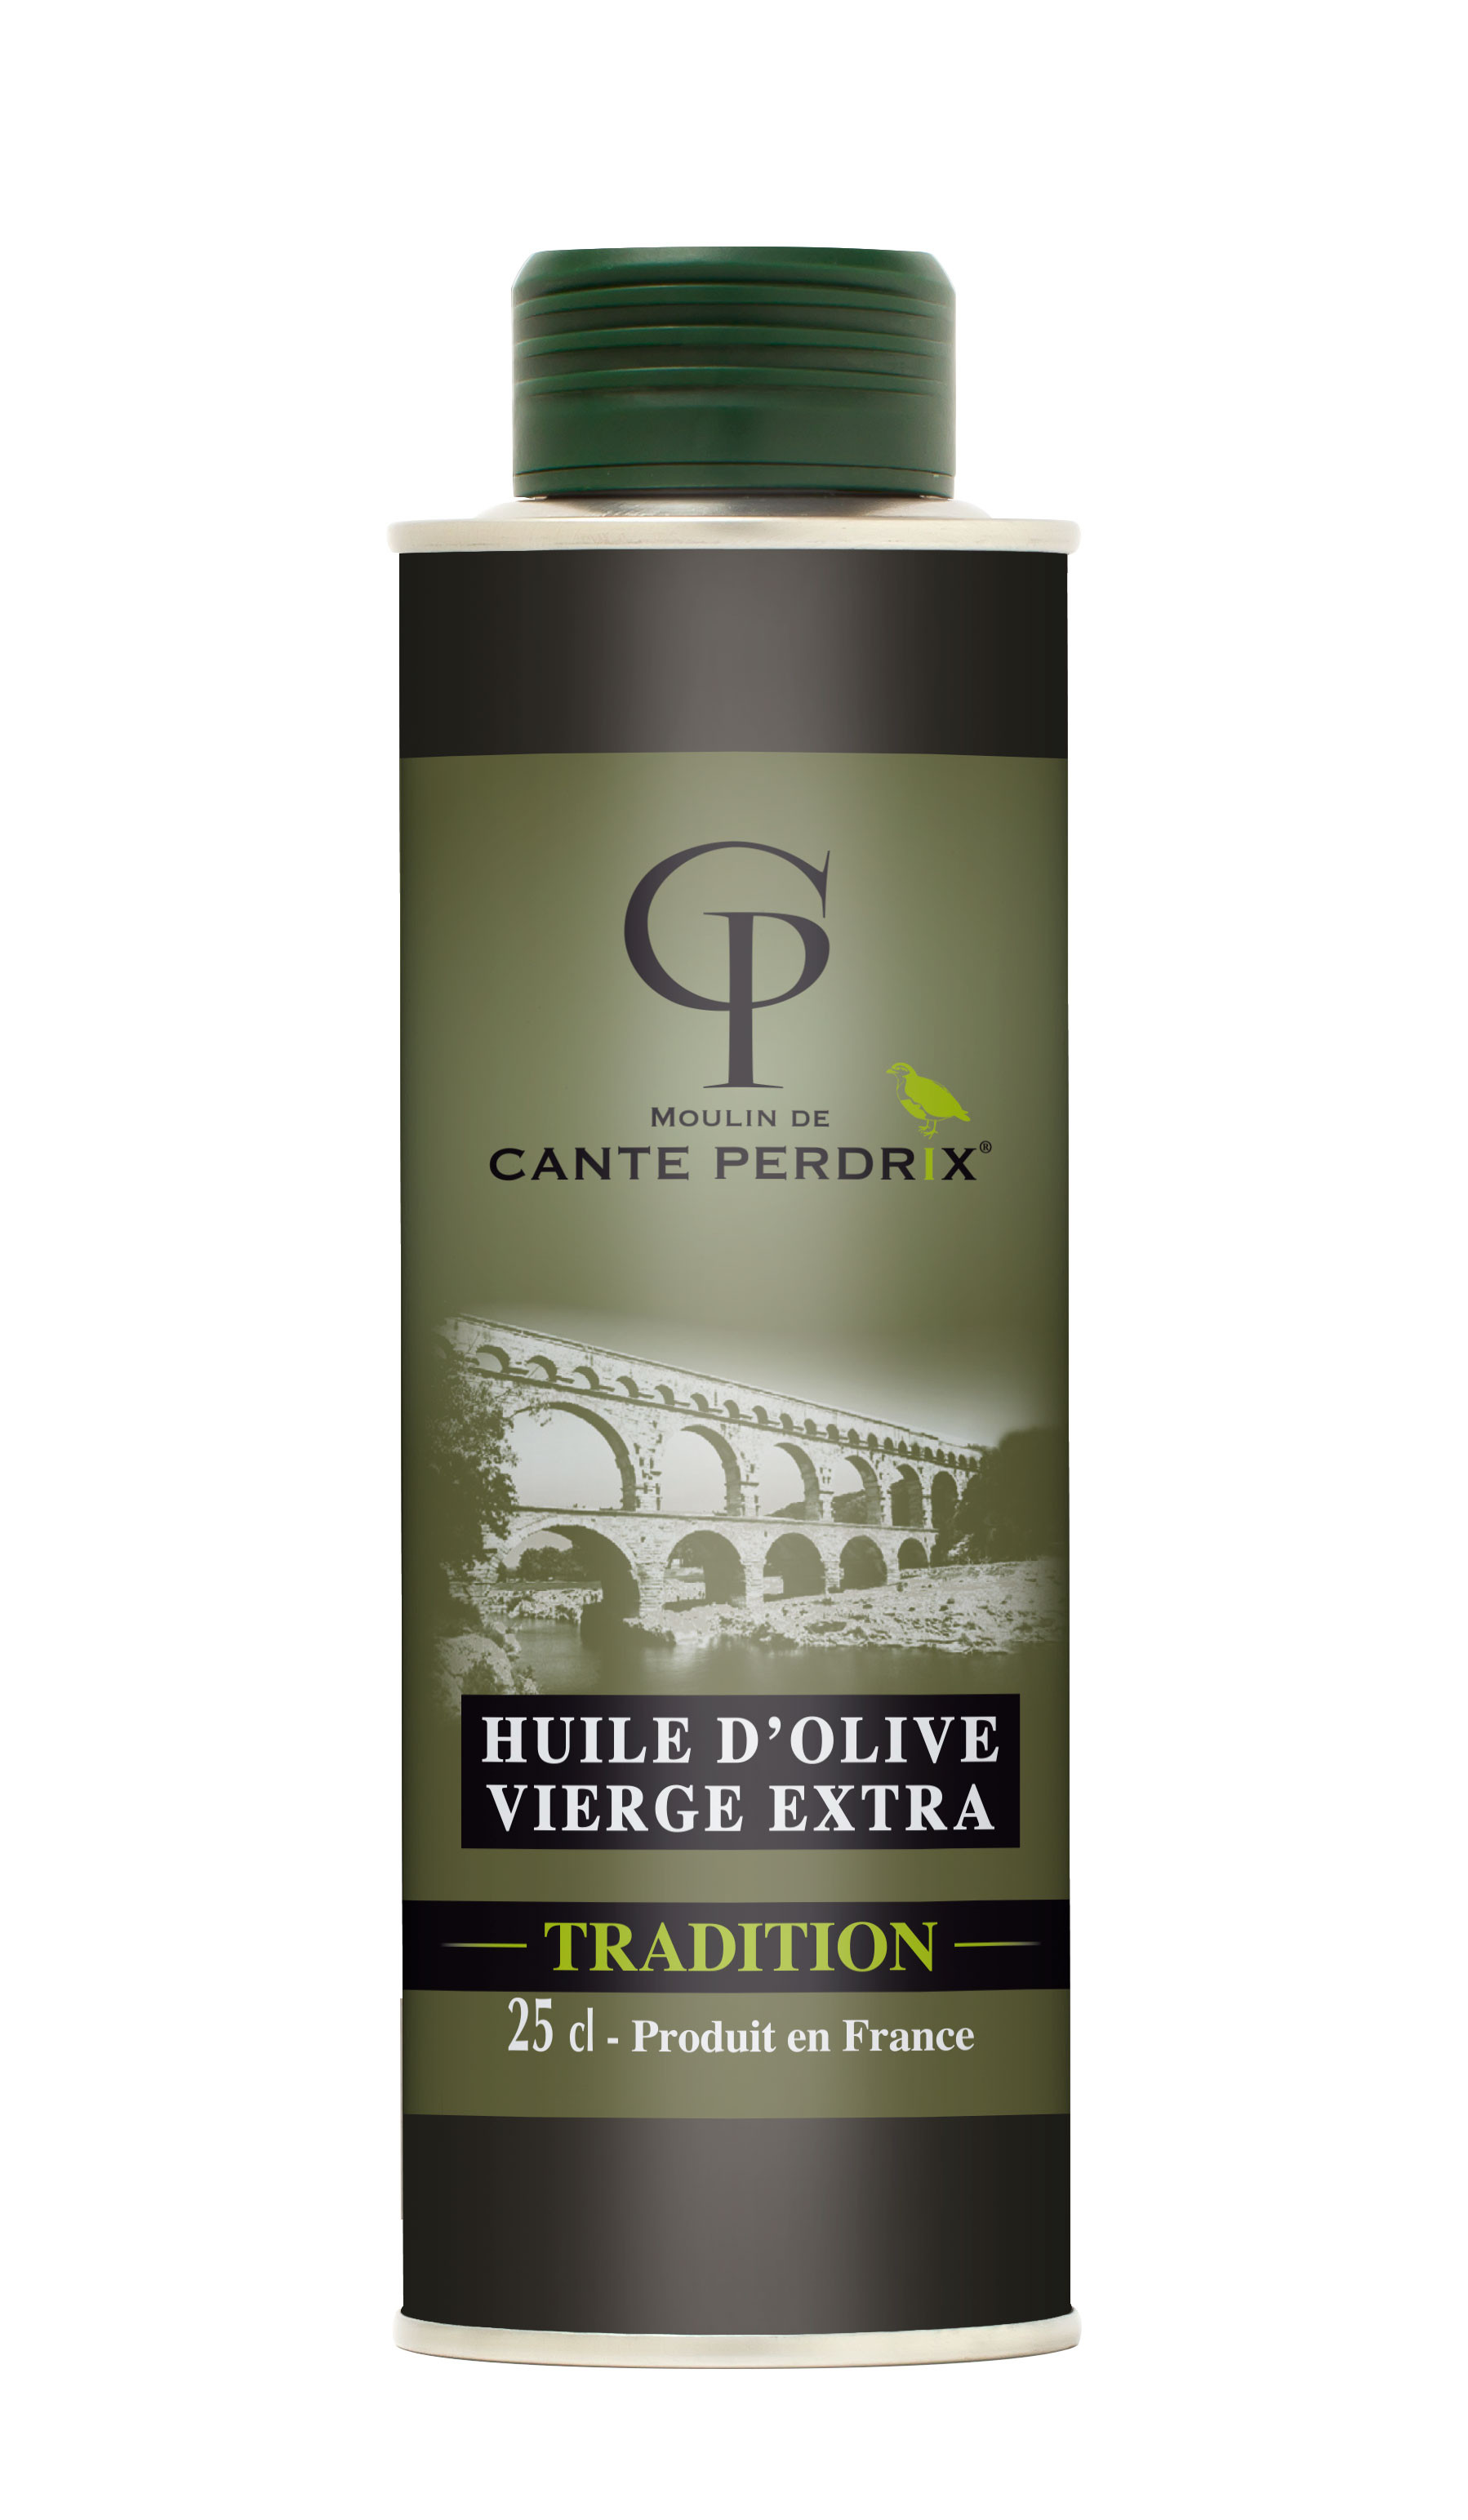 Huile d'olive vierge extra Tradition, 25 cl